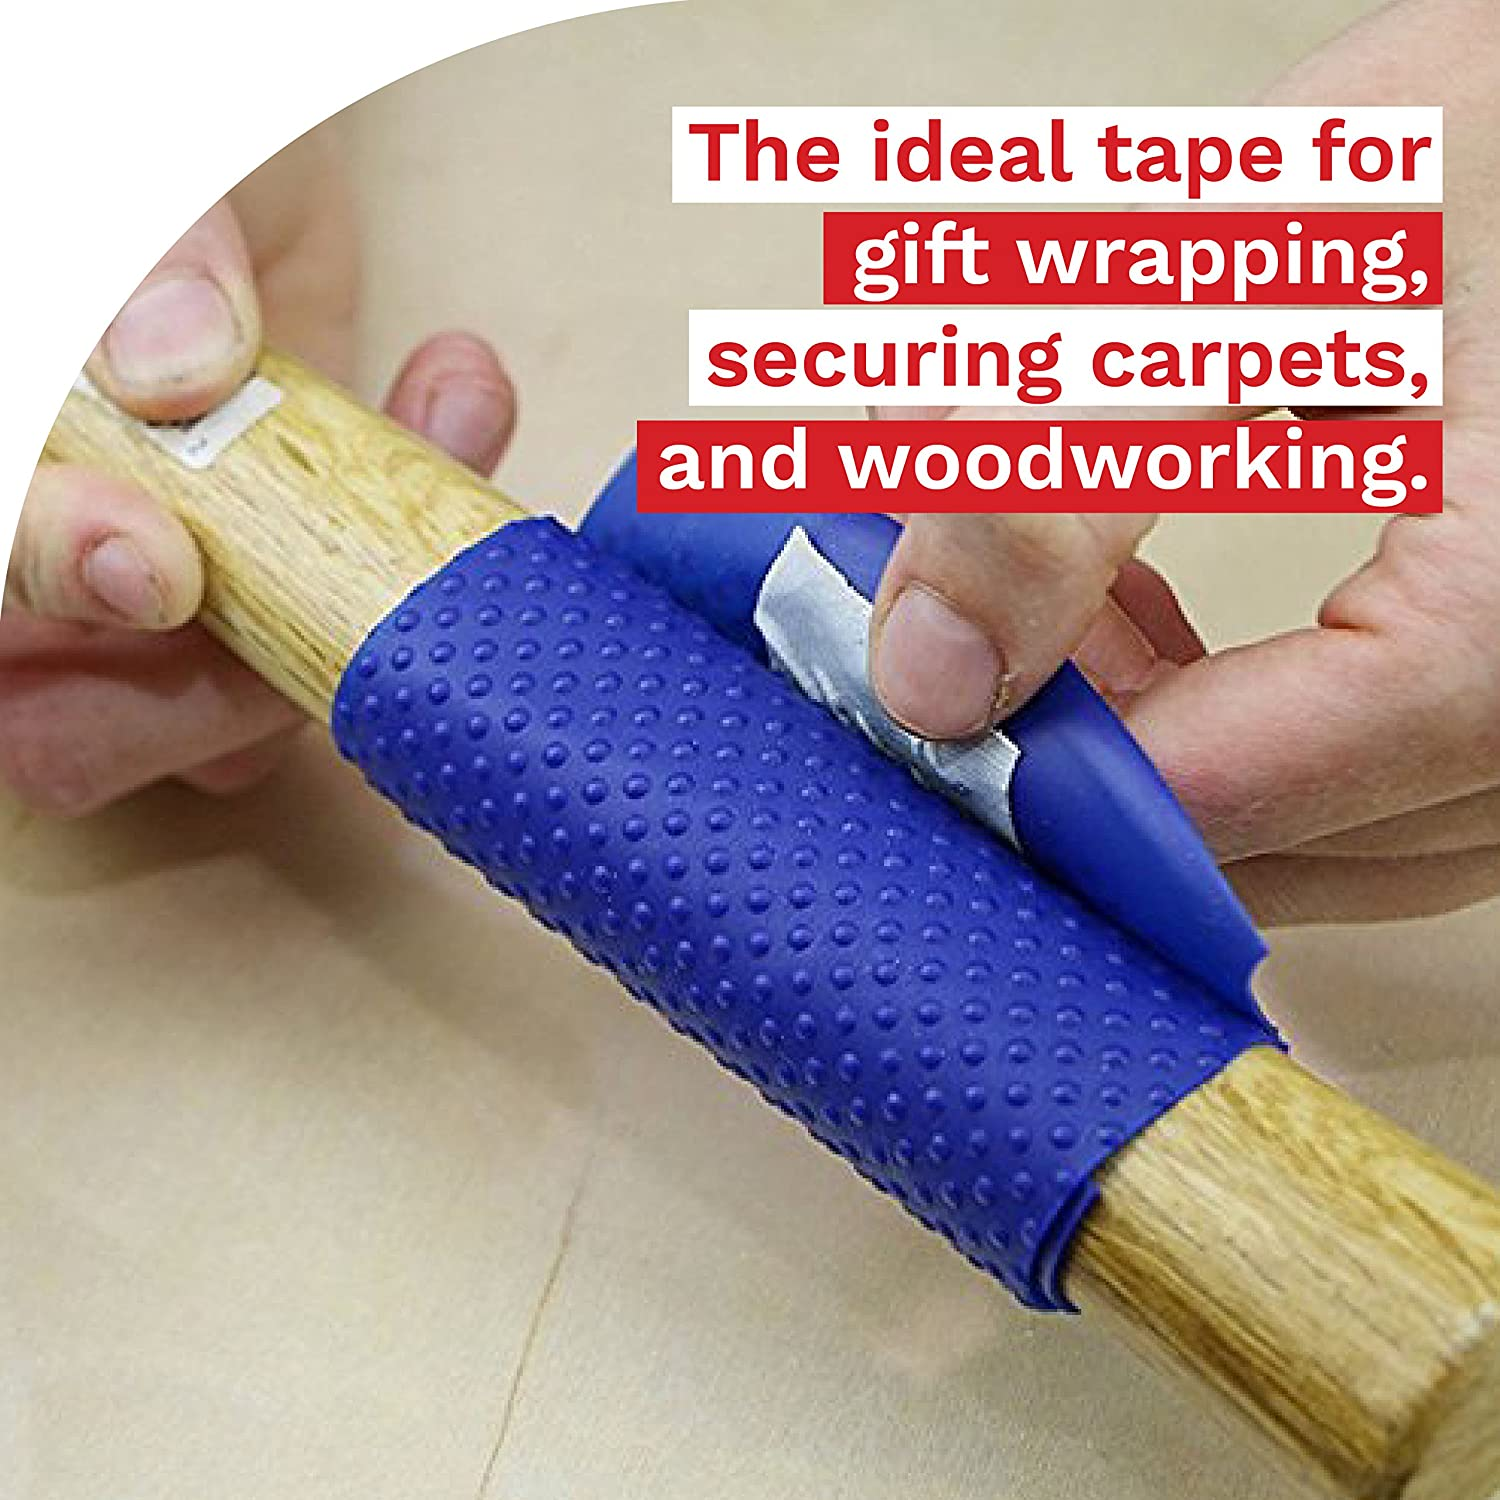 XFasten Double Sided Tape, Removable, 1-Inch by 20-Yard (Pack of 3) Ideal as a Gift Wrap Tape, Holding Carpets, and Woodworking : Office Products